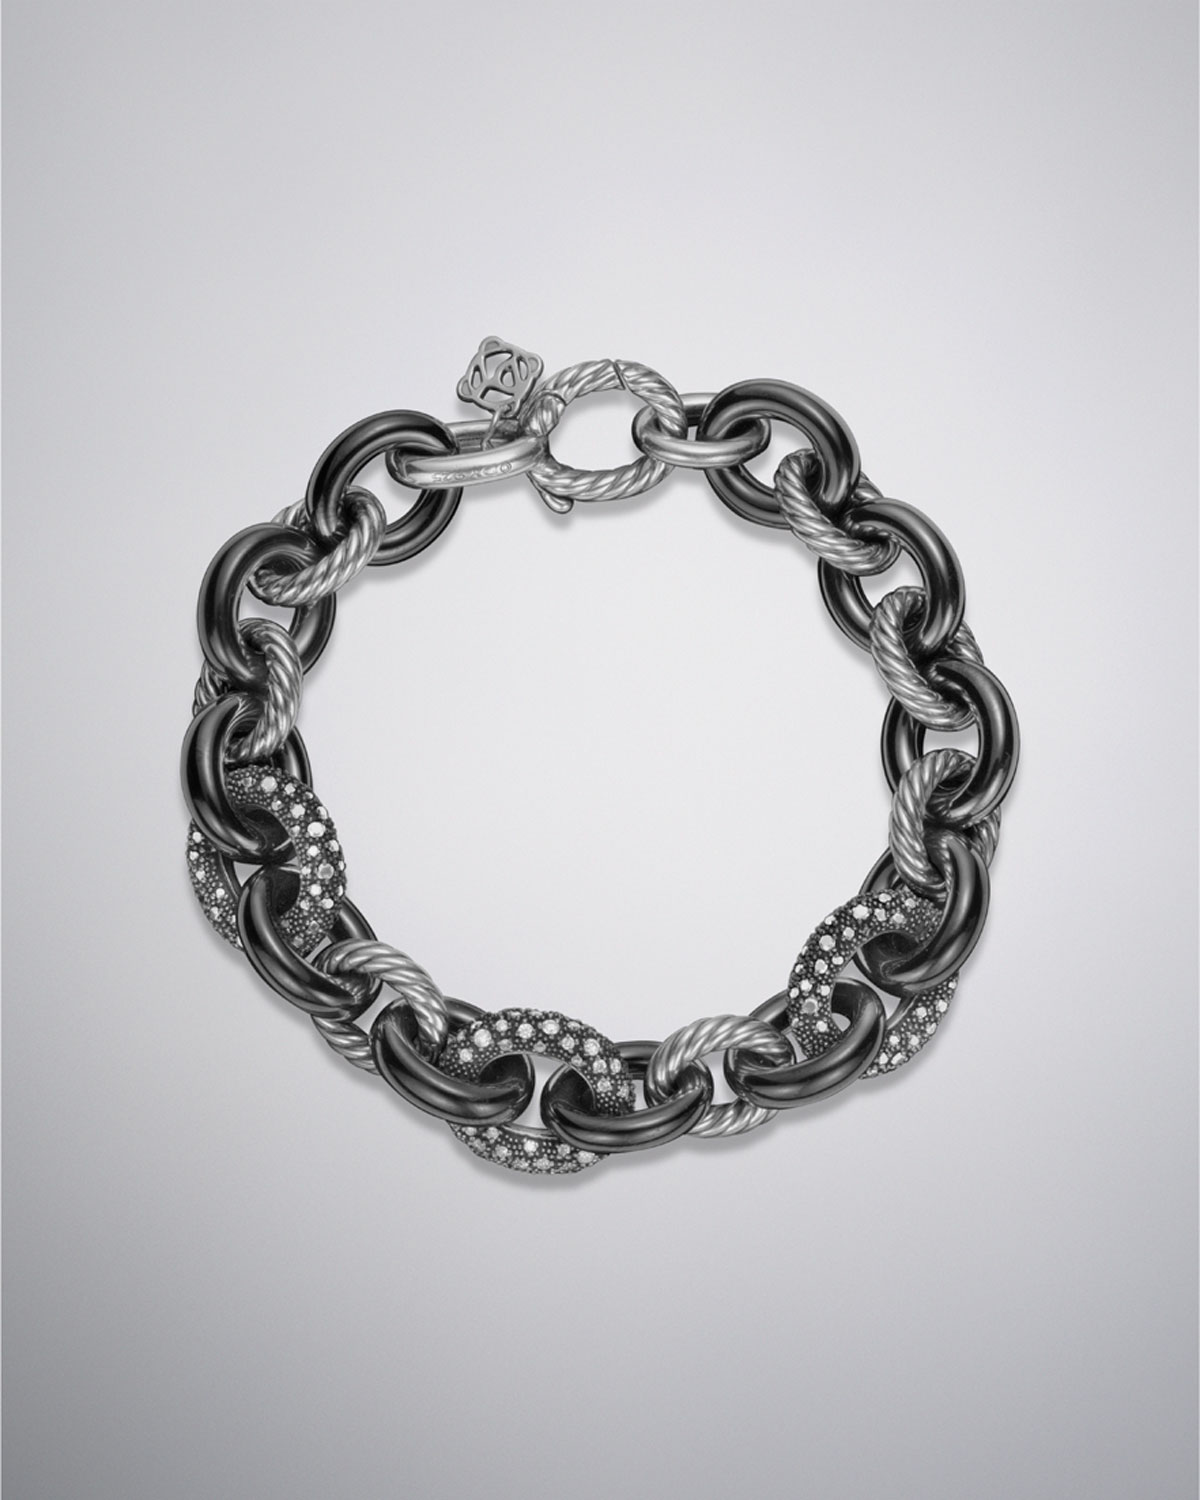 David yurman midnight melange oval link bracelet in silver for David yurman like bracelets